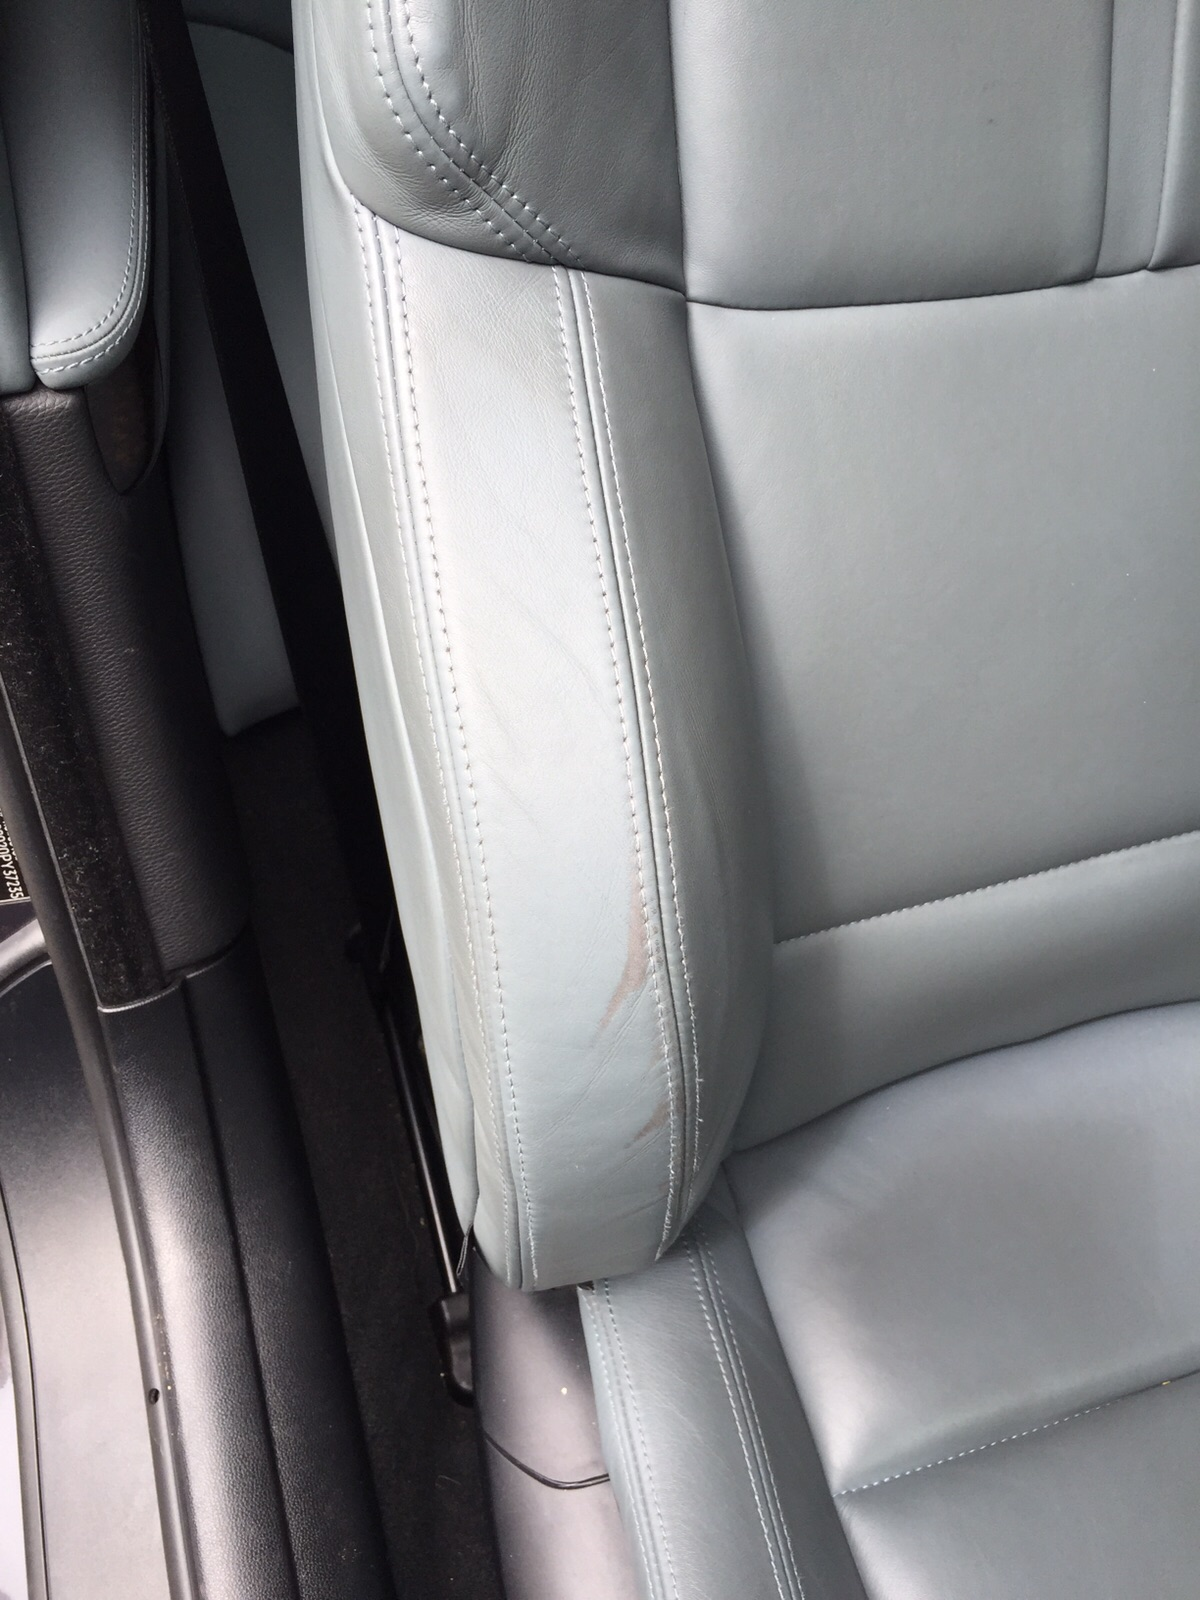 Drivers seat bolster has small areas of scuffing from getting in and out of the car.